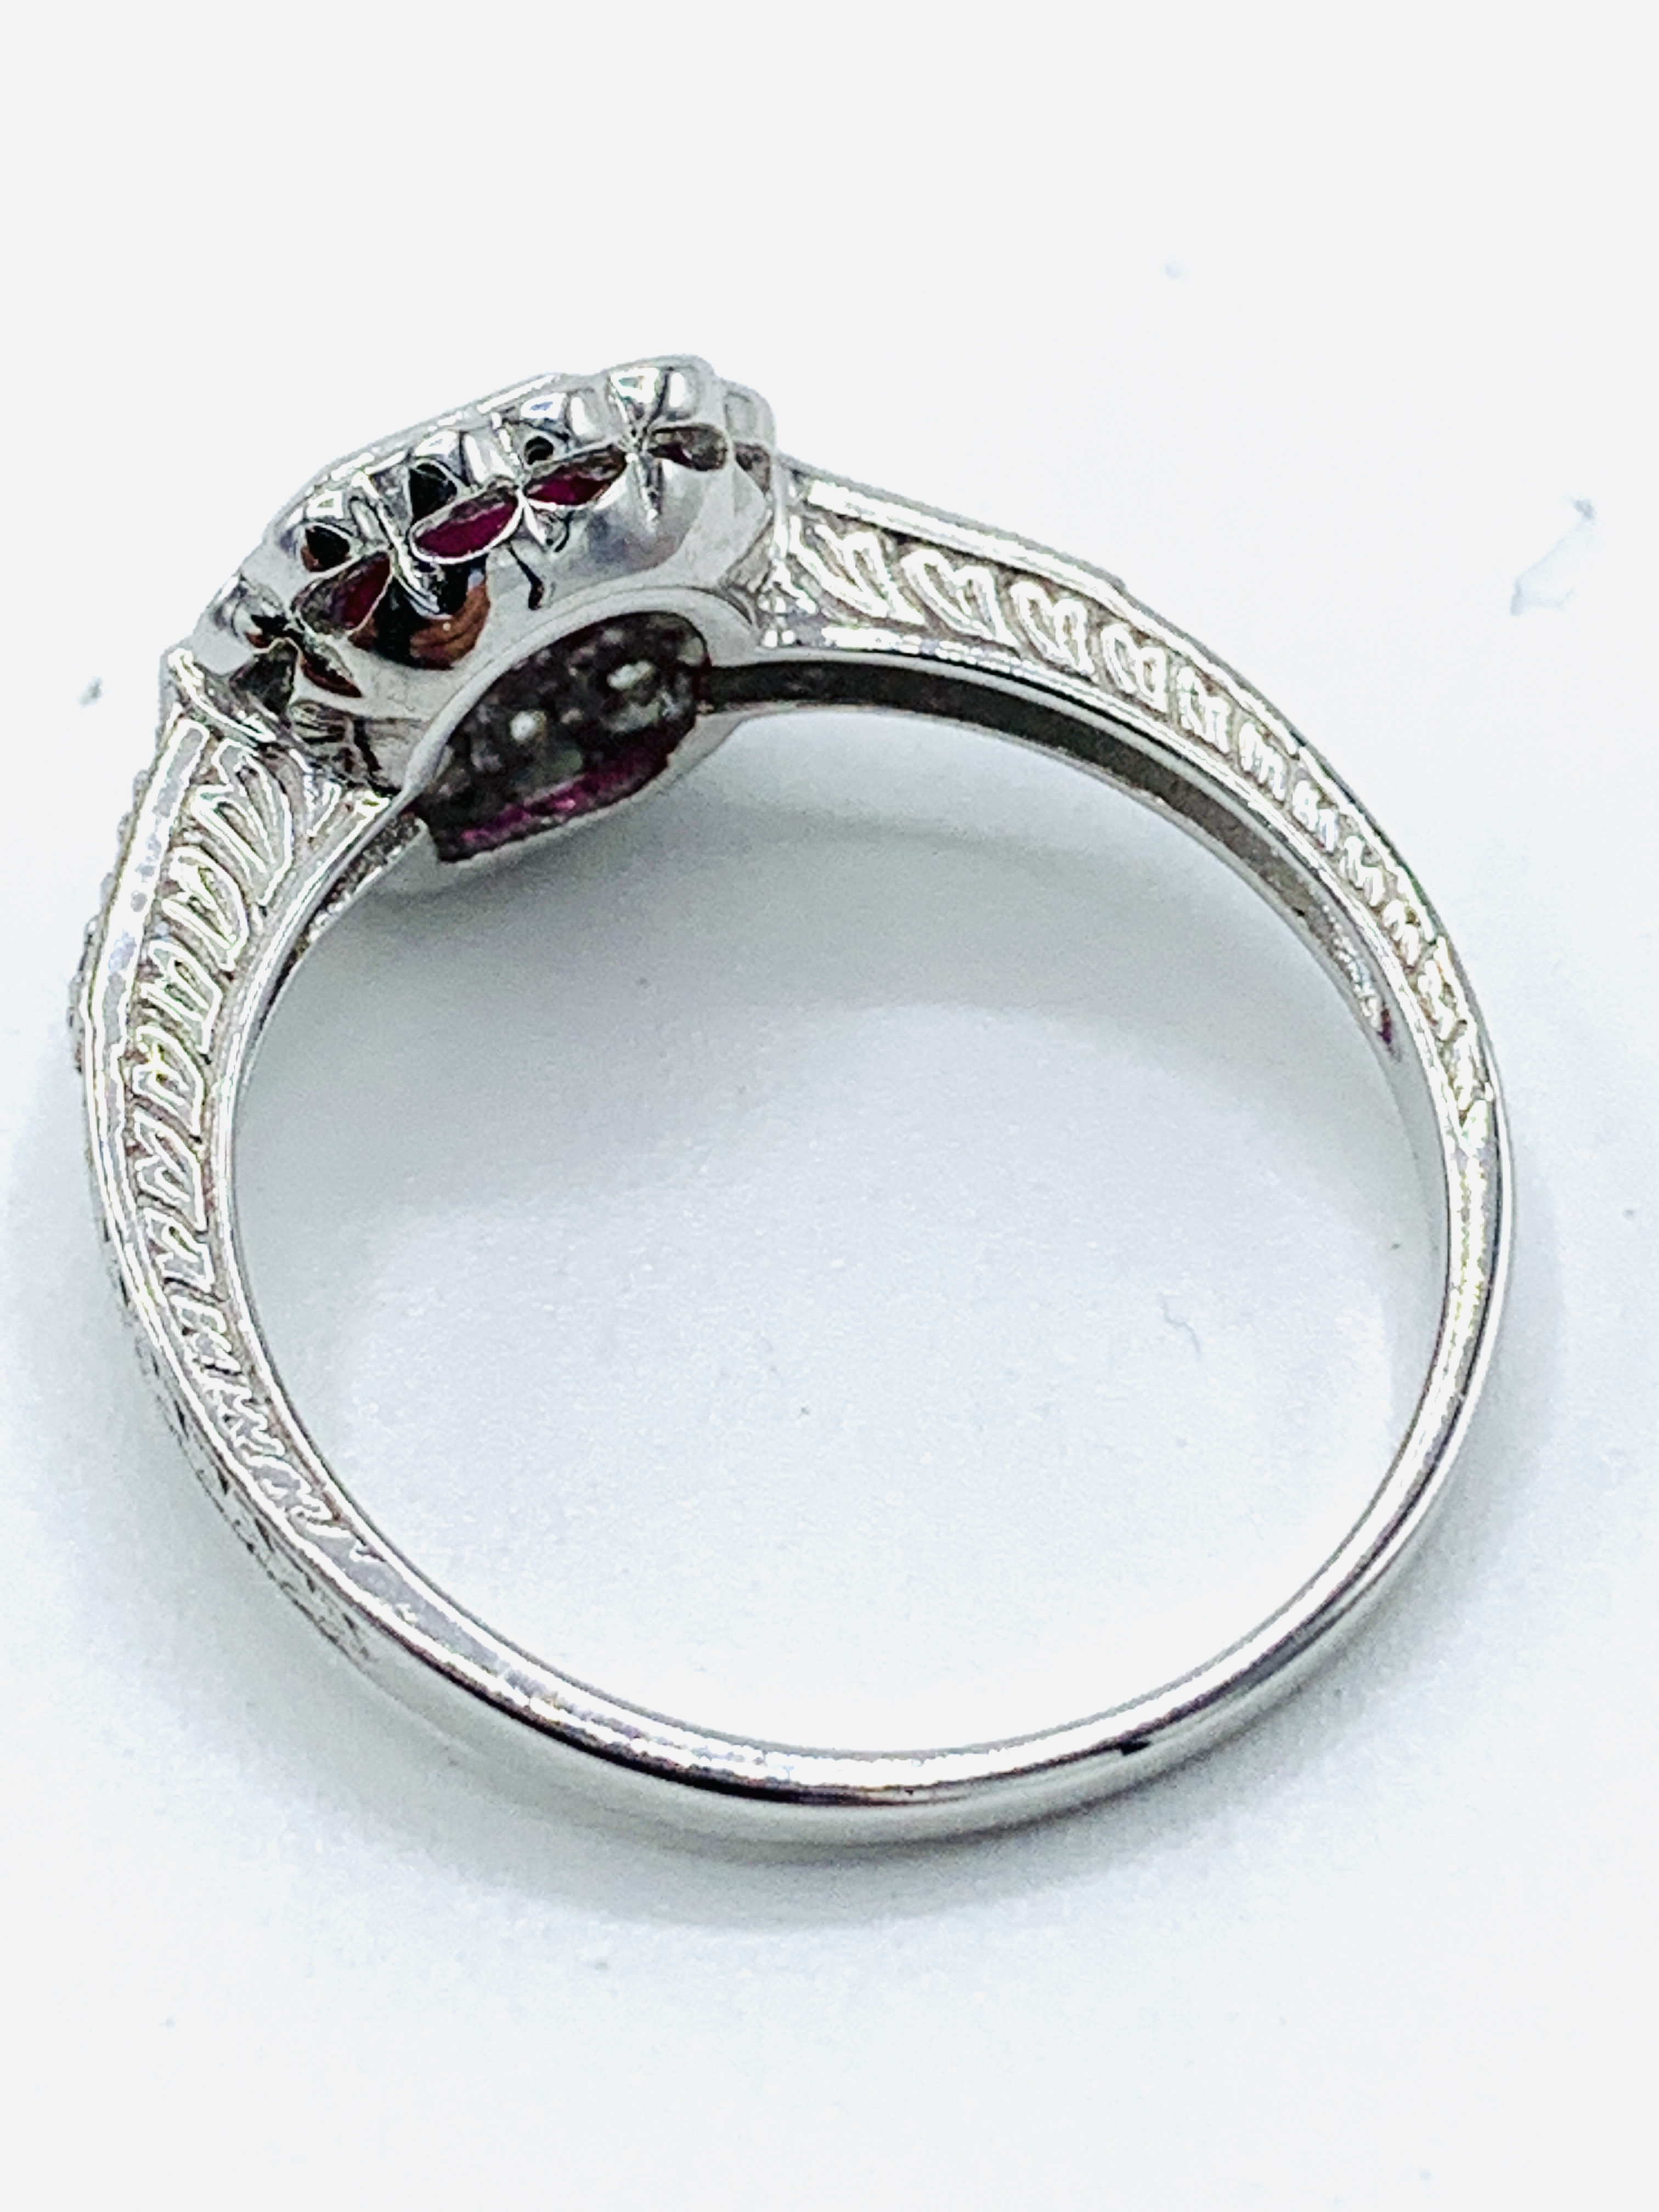 18ct white gold ruby and diamond ring - Image 3 of 3